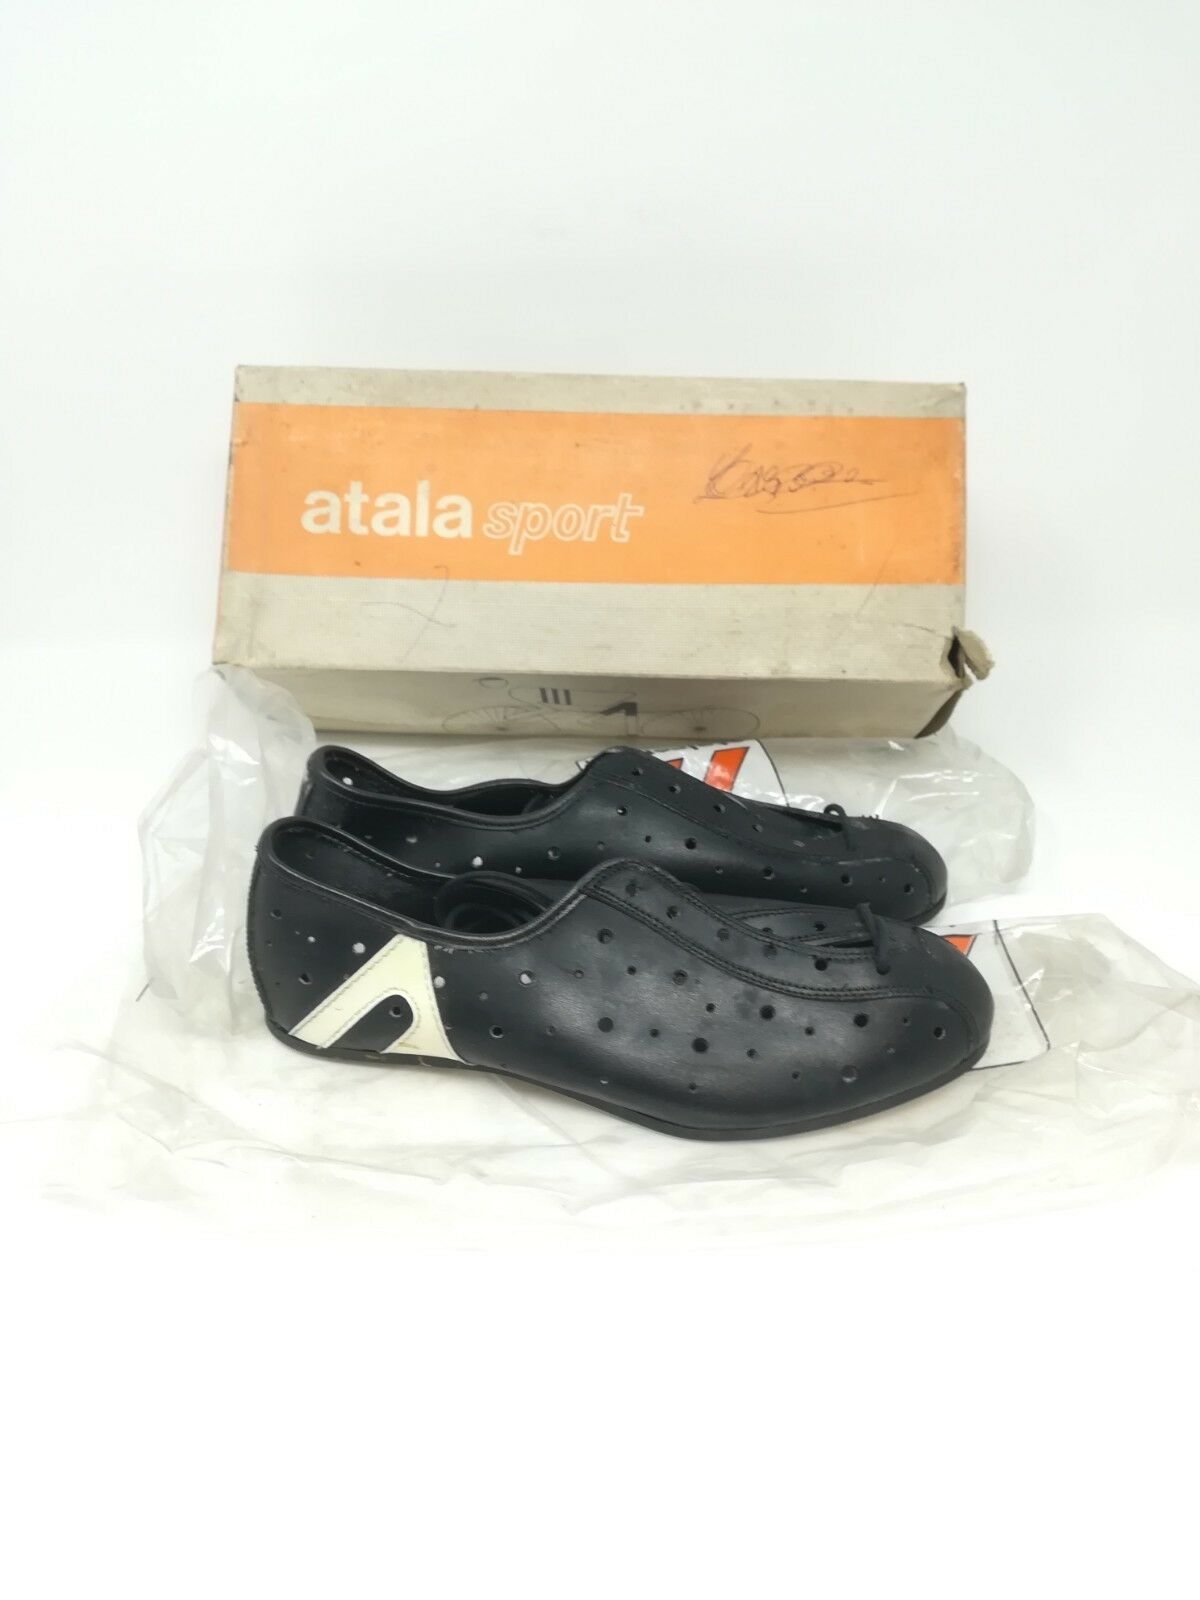 Vintage chaussures cycling cycling chaussures Atala Sport 37 NOS